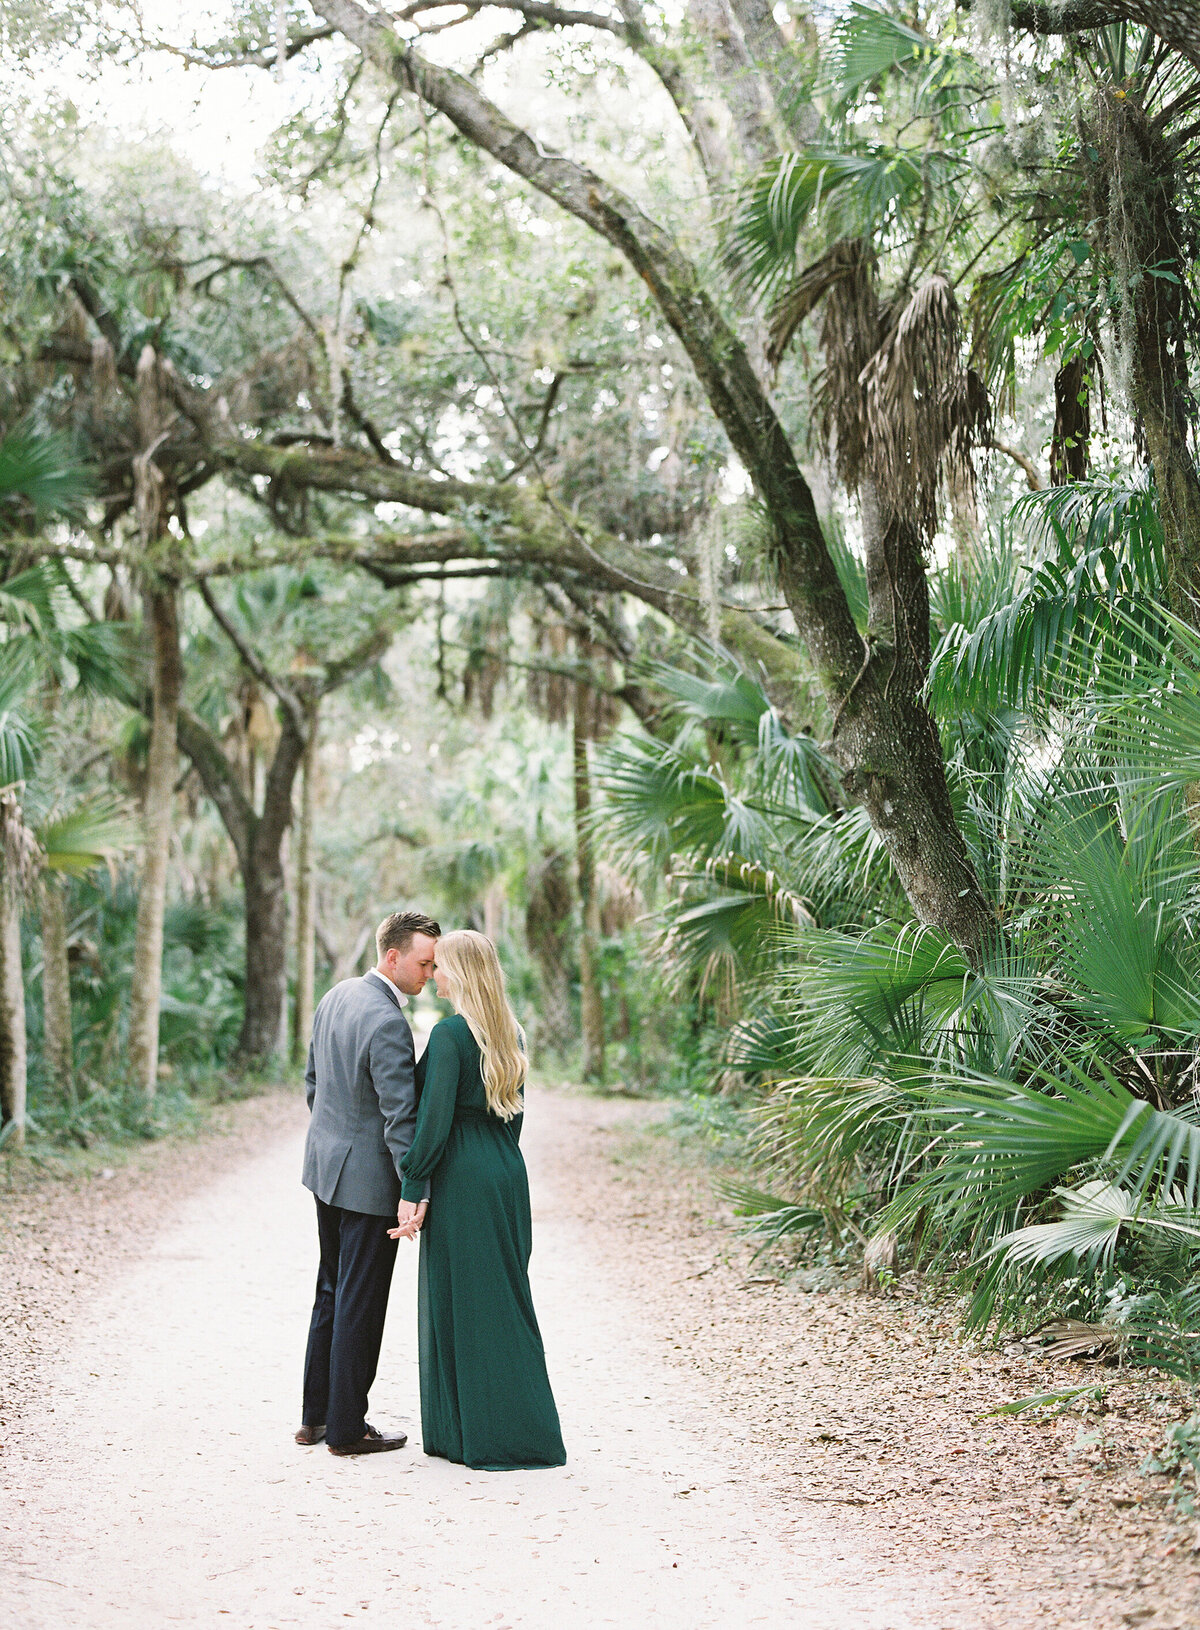 Napl-Florida-Engagement-film-photogrpaher-koreshan-state-park-7